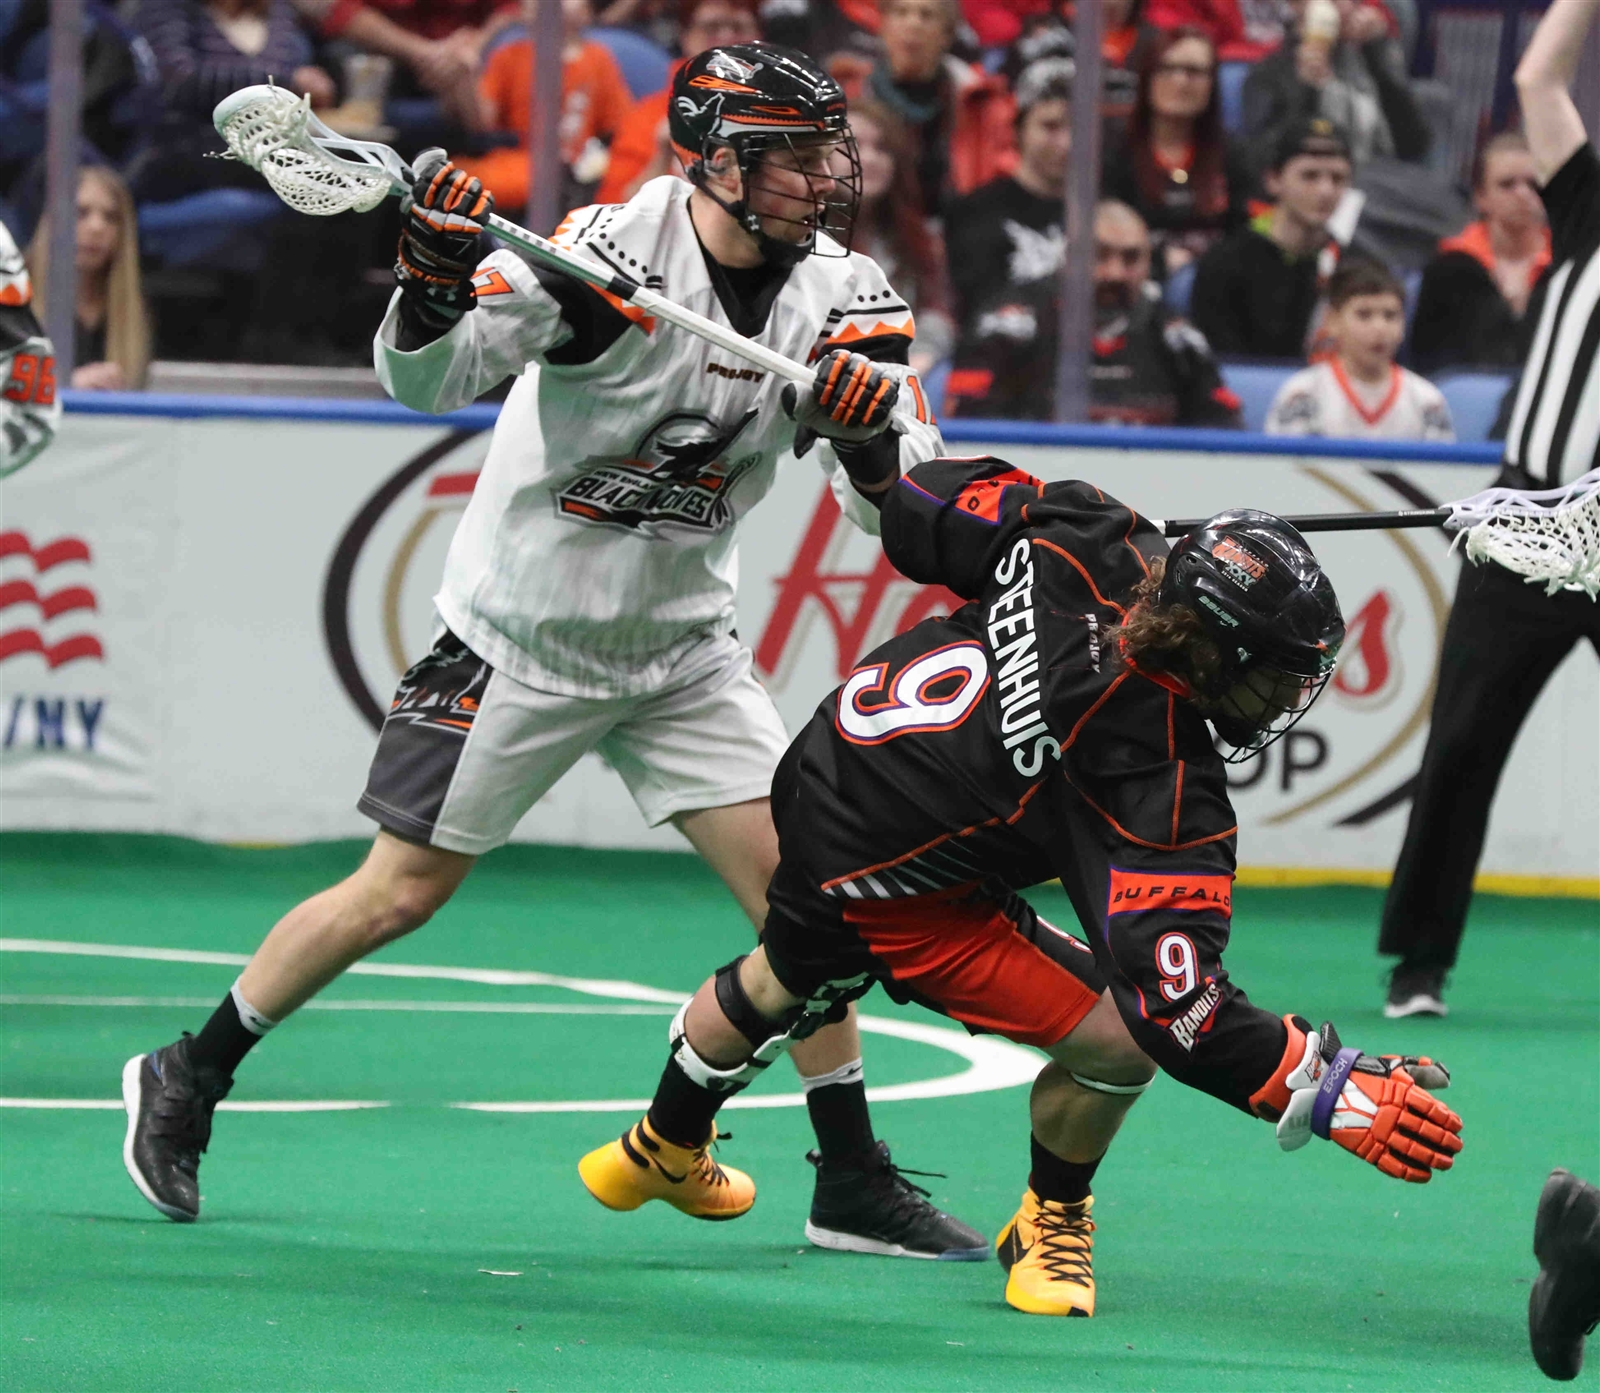 Buffalo Bandits' Mark Steenhuis battles New England Black Wolves' Zak Reid for the ball.